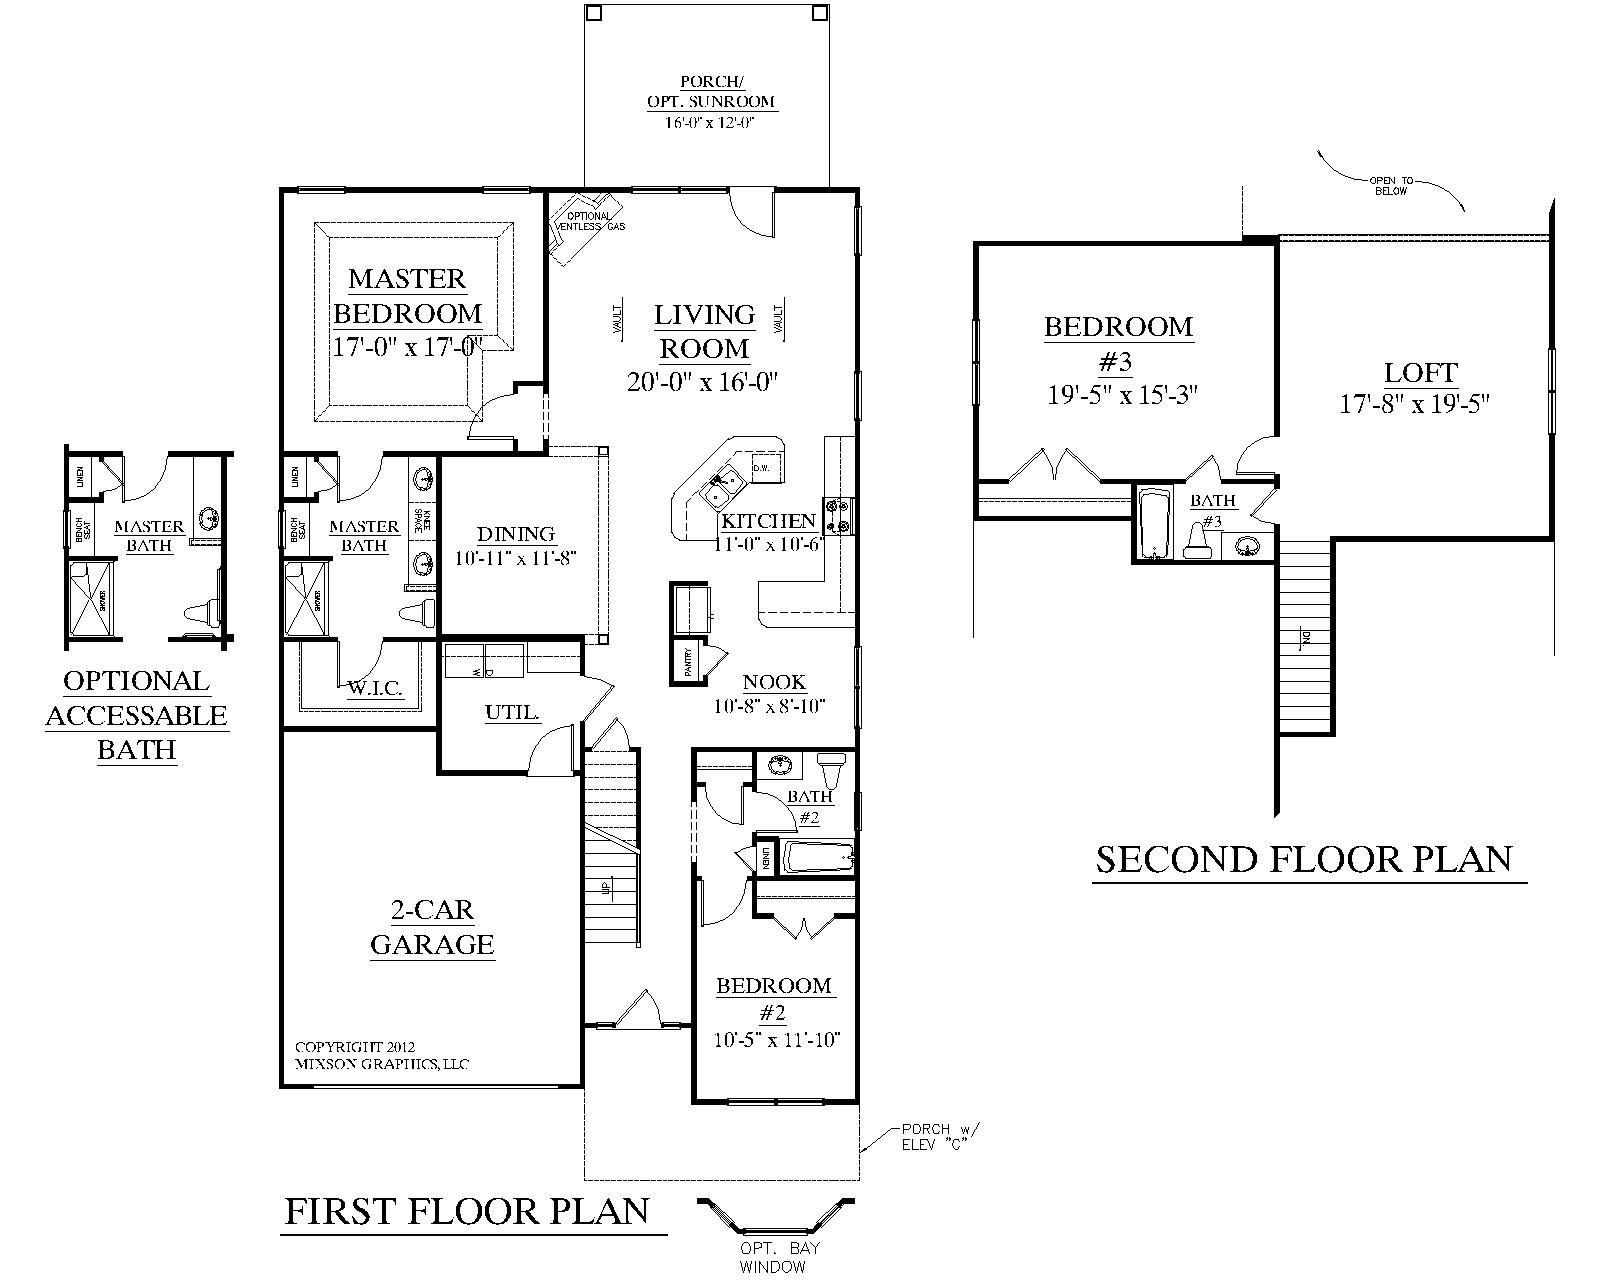 House Plan 2545 ENGLEWOOD floor plan   Traditional 1 1 2 story house. House Plan 2545 ENGLEWOOD floor plan   Traditional 1 1 2 story